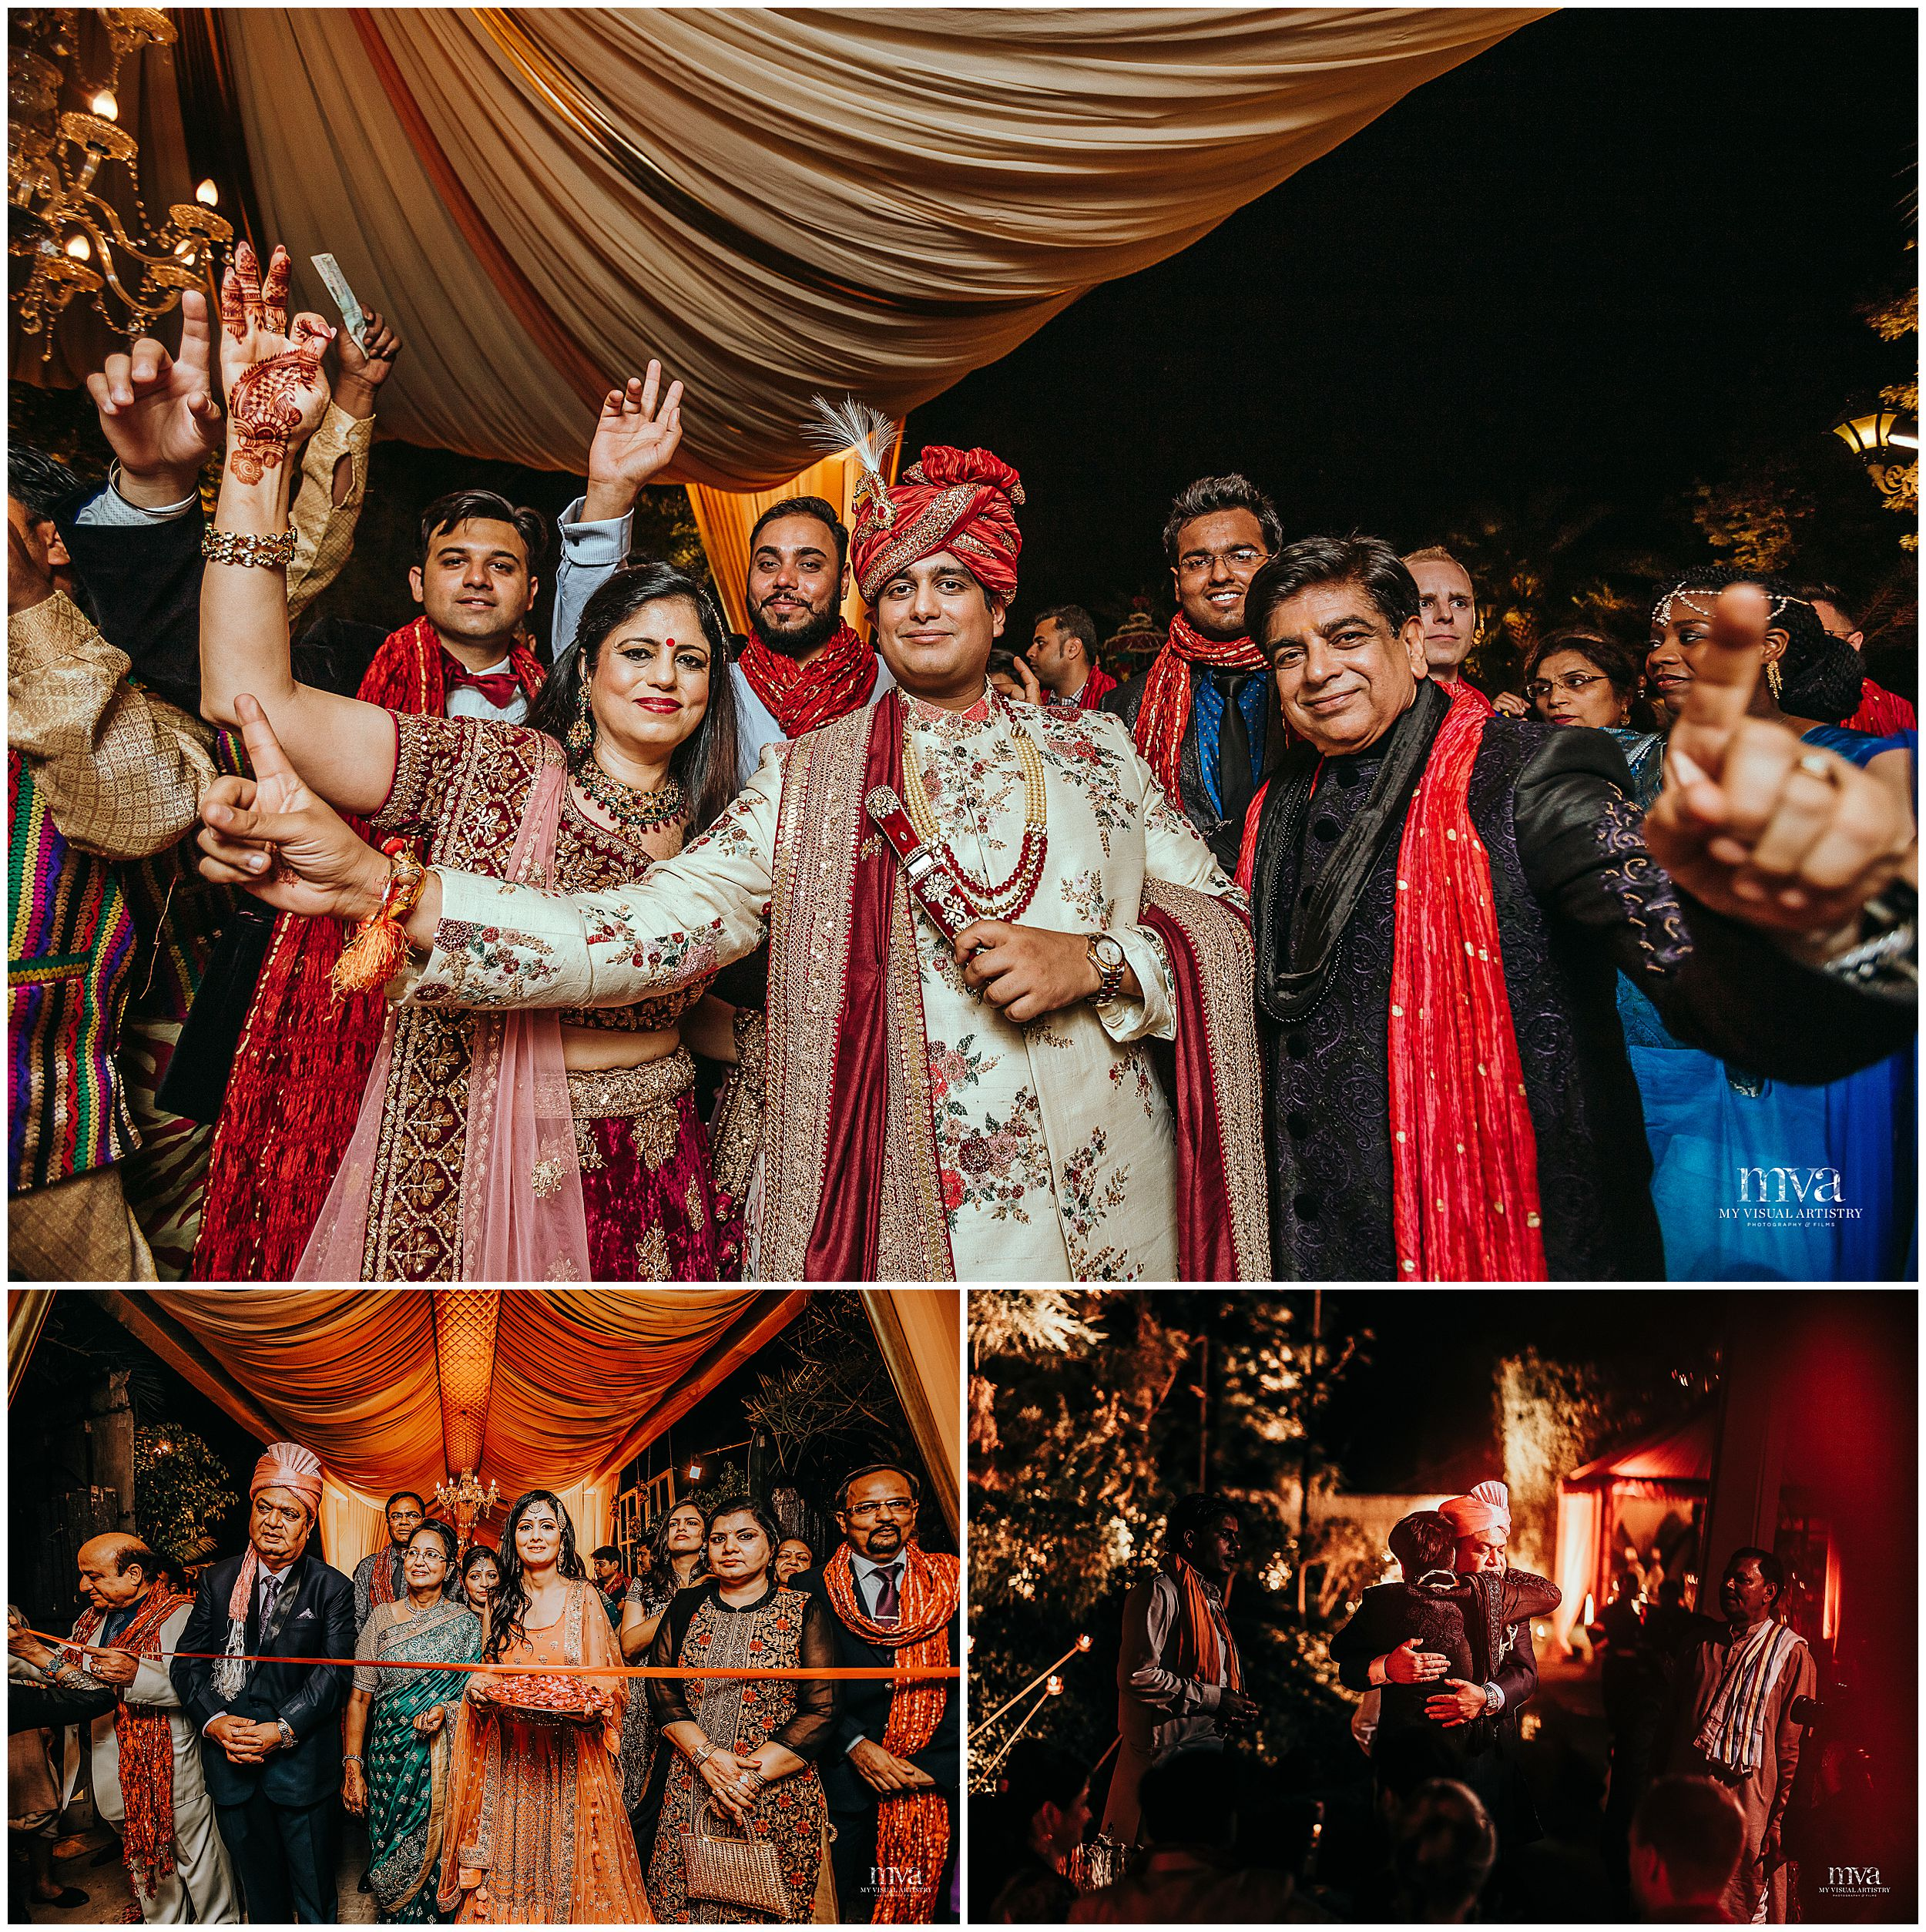 SIDDARTH_SAKSHI_MYVISUALARTISTRY_WEDDING_PHOTOGRAPHY_MVA_EROSHANGRILA_DELHI_0032.jpg